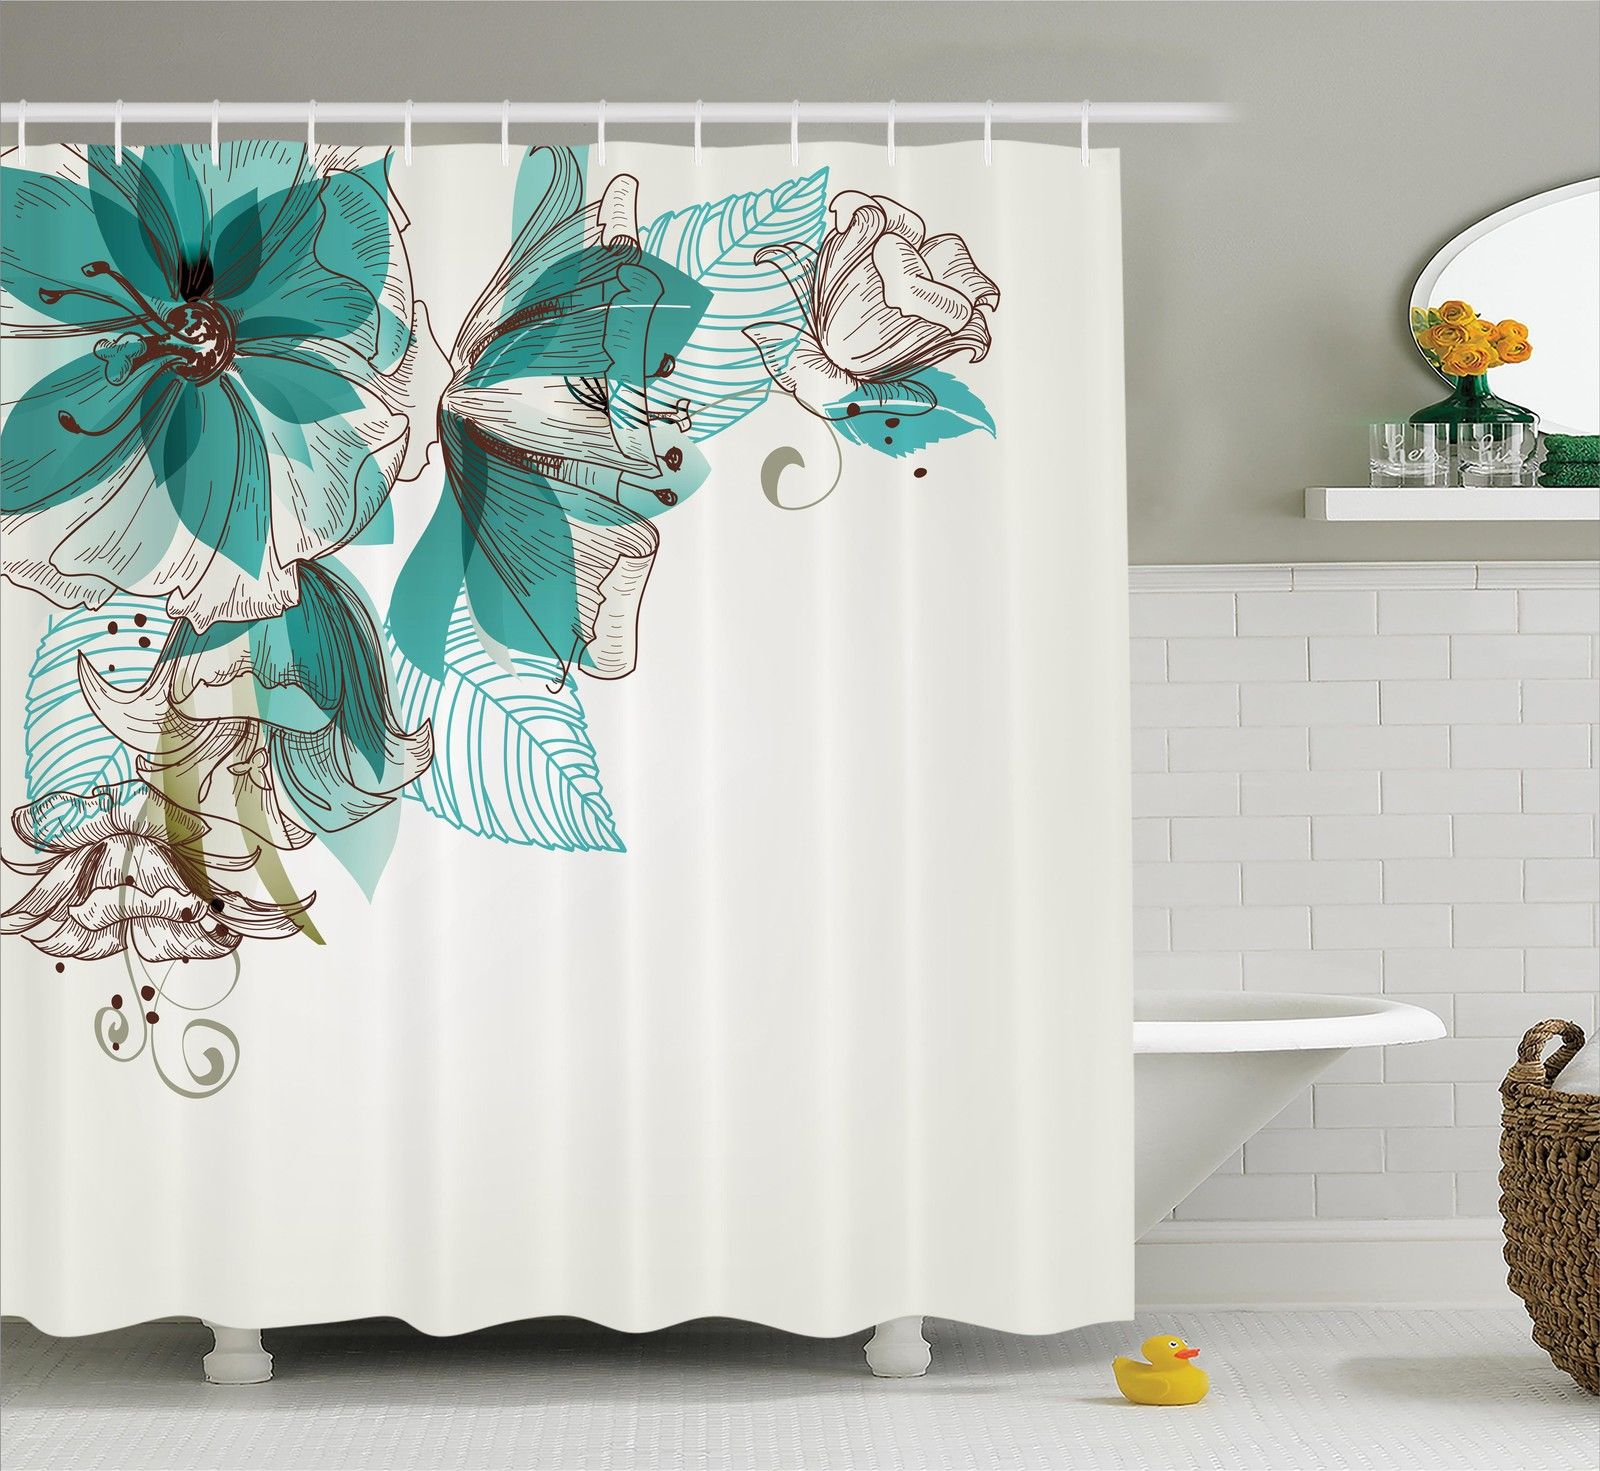 Kohls Com Shower Curtains Shower Curtains At Kohls Flowers Buds Leaf